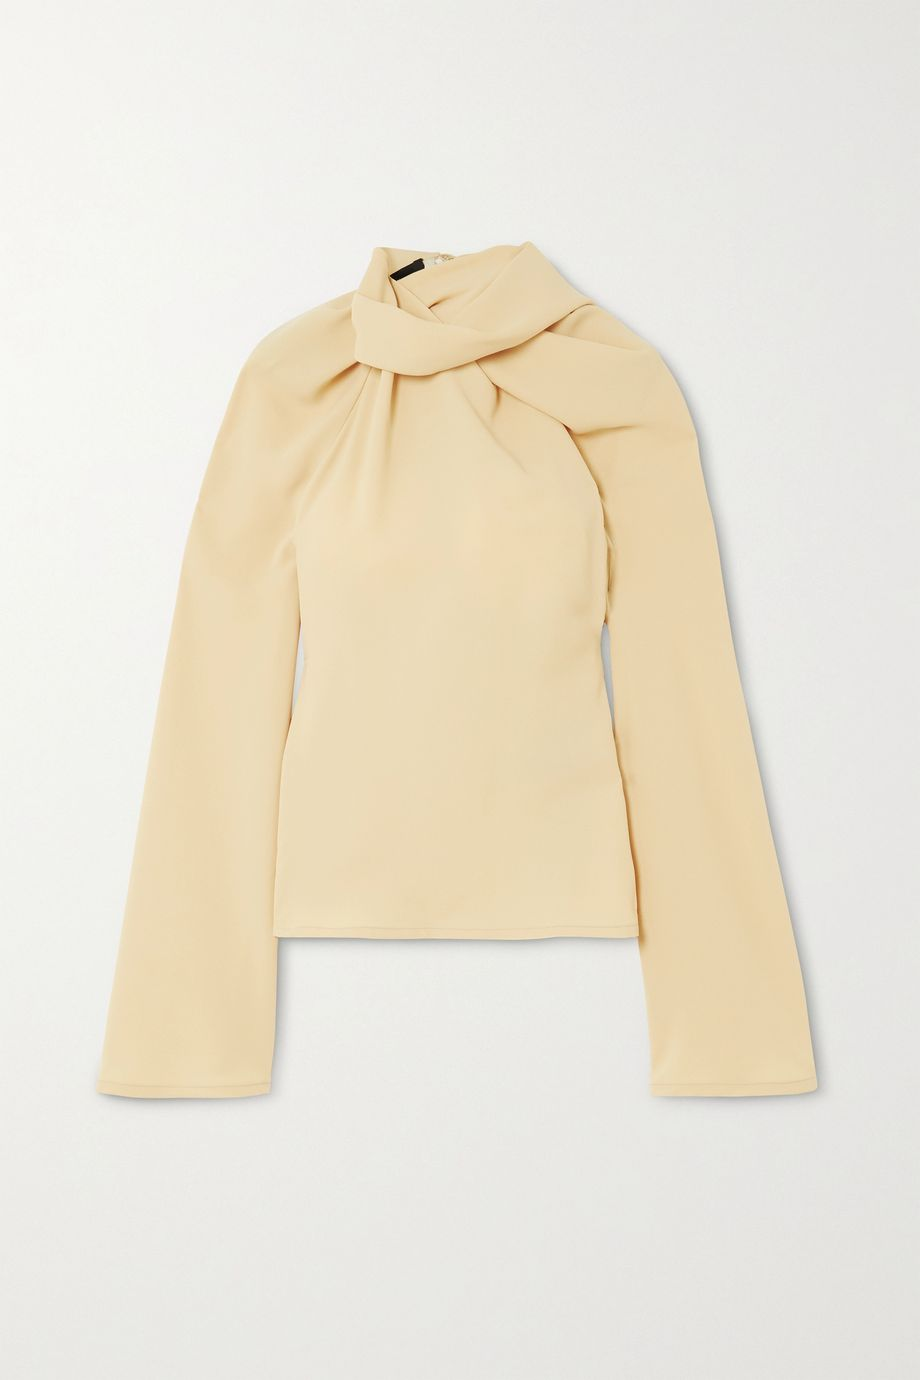 Ellery Le Plage gathered crepe top